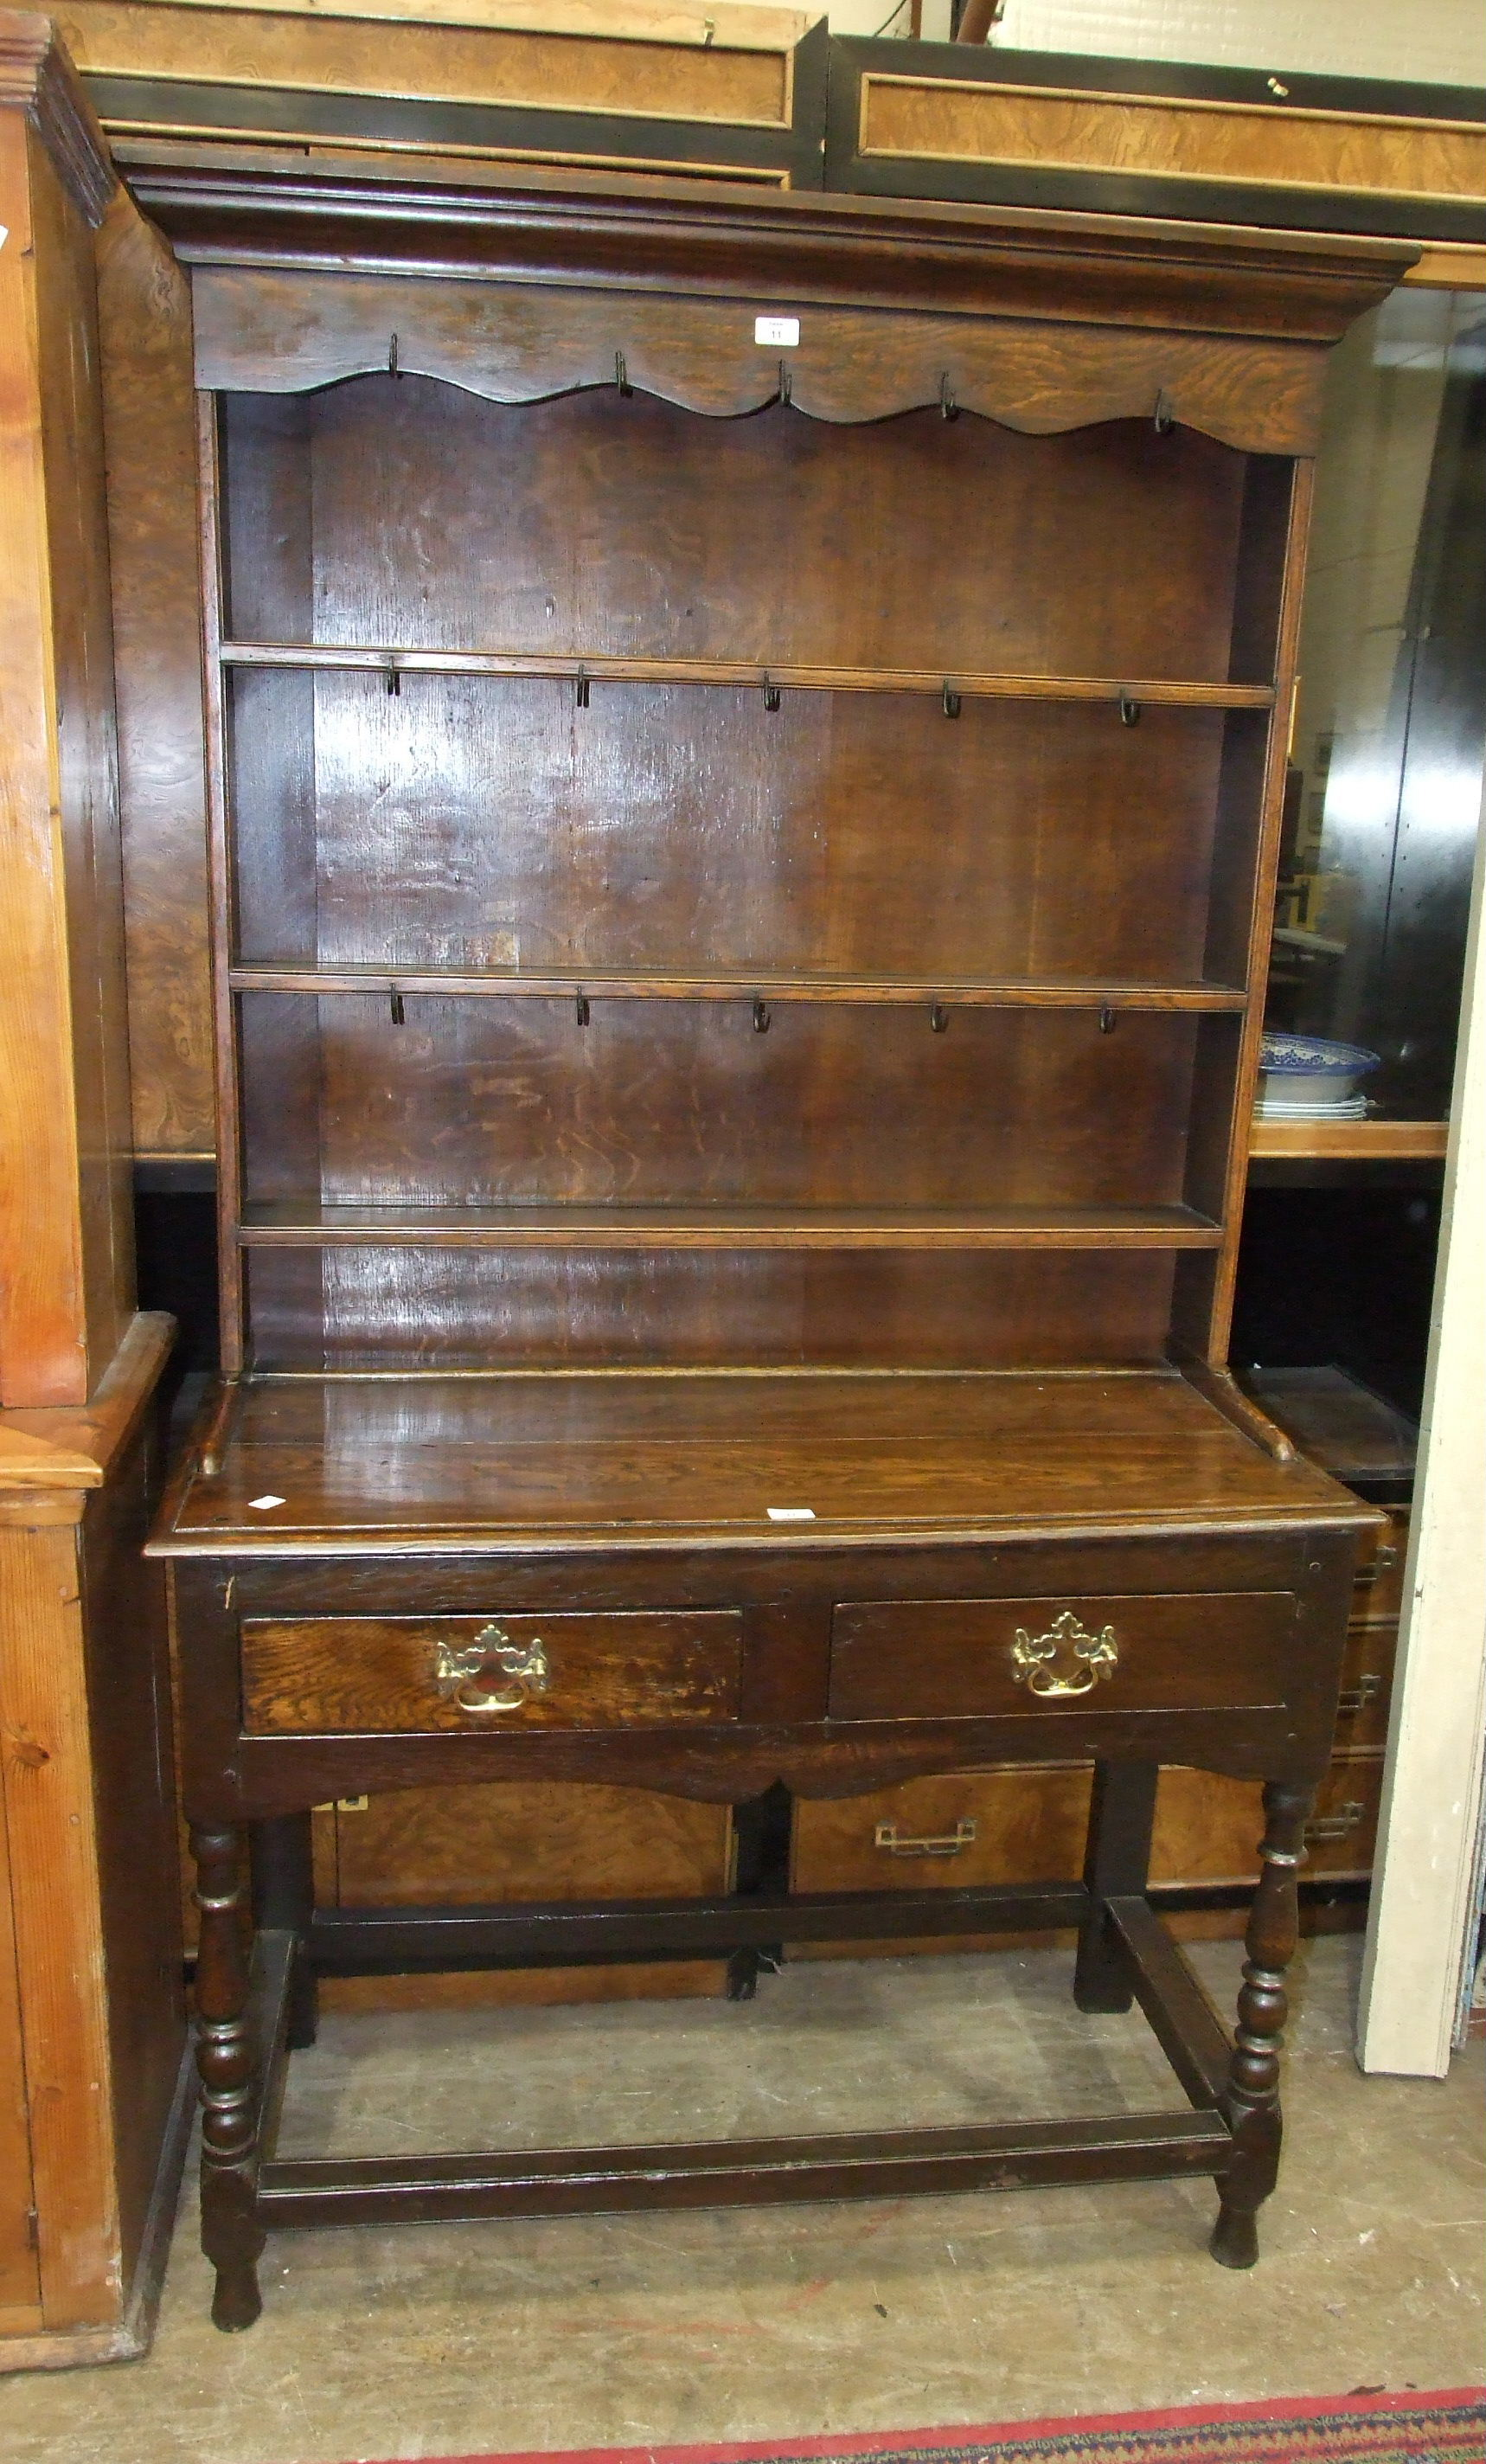 Lot 11 - A reproduction small oak dresser in the 18th century style, the plate rack above two small